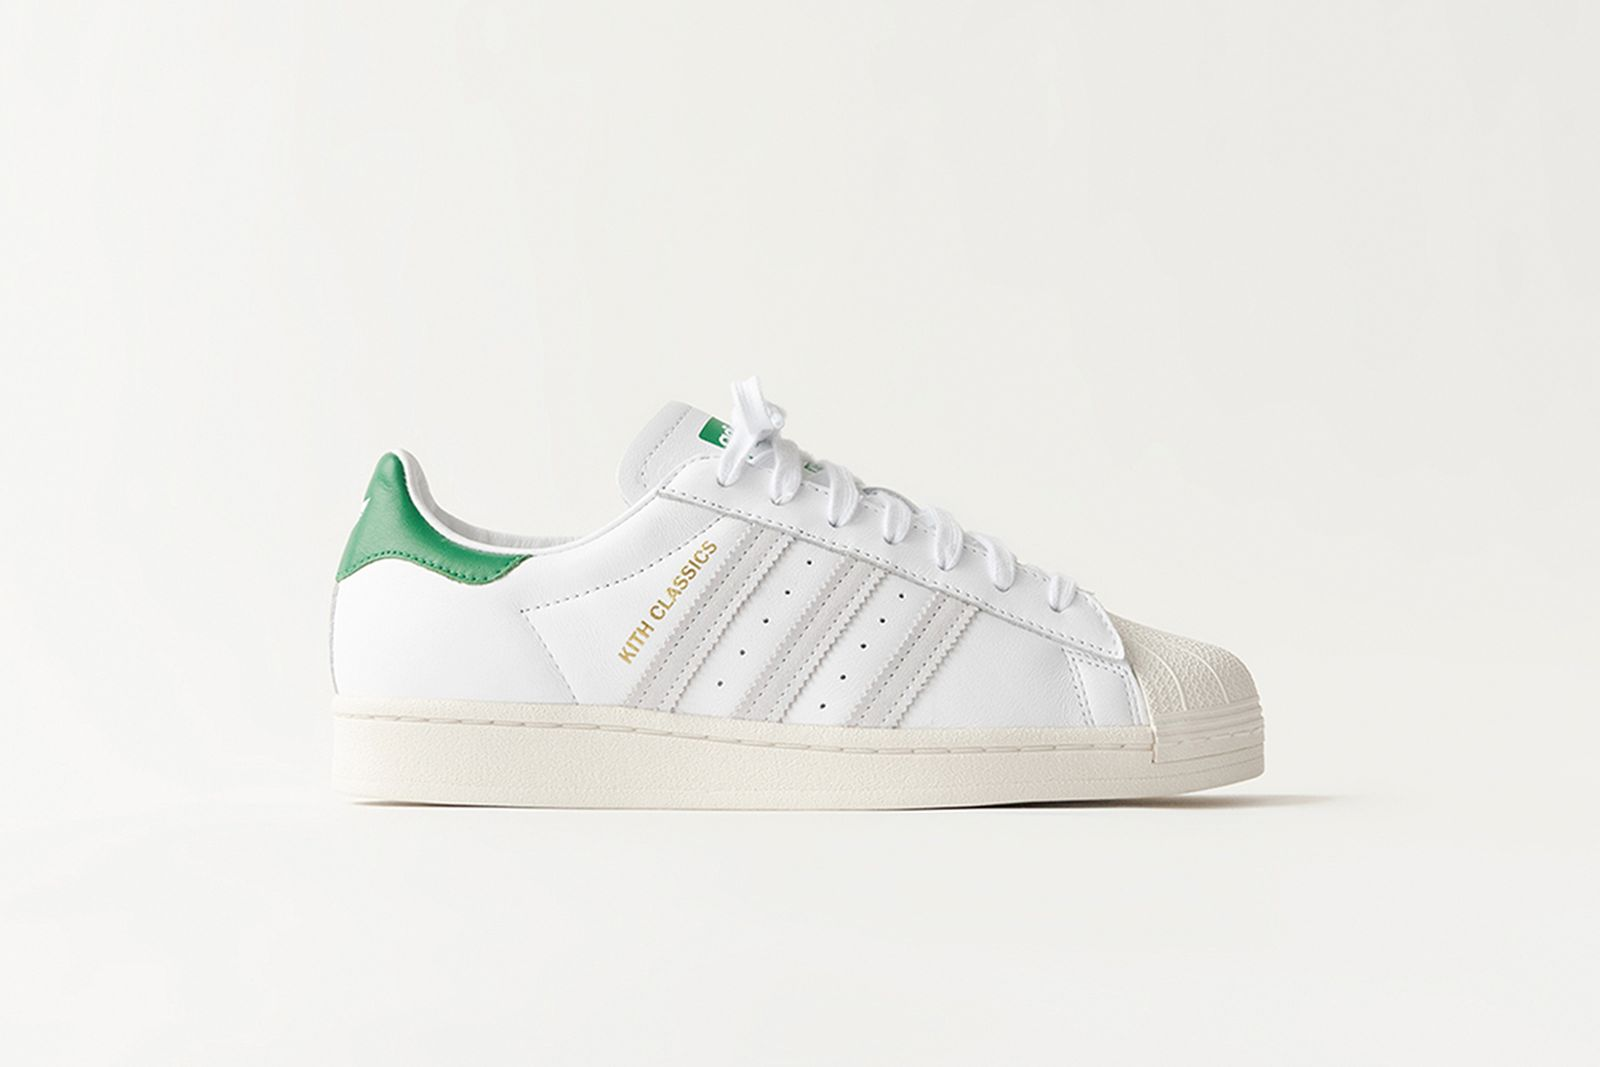 kith-adidas-summer-2021-release-info-07